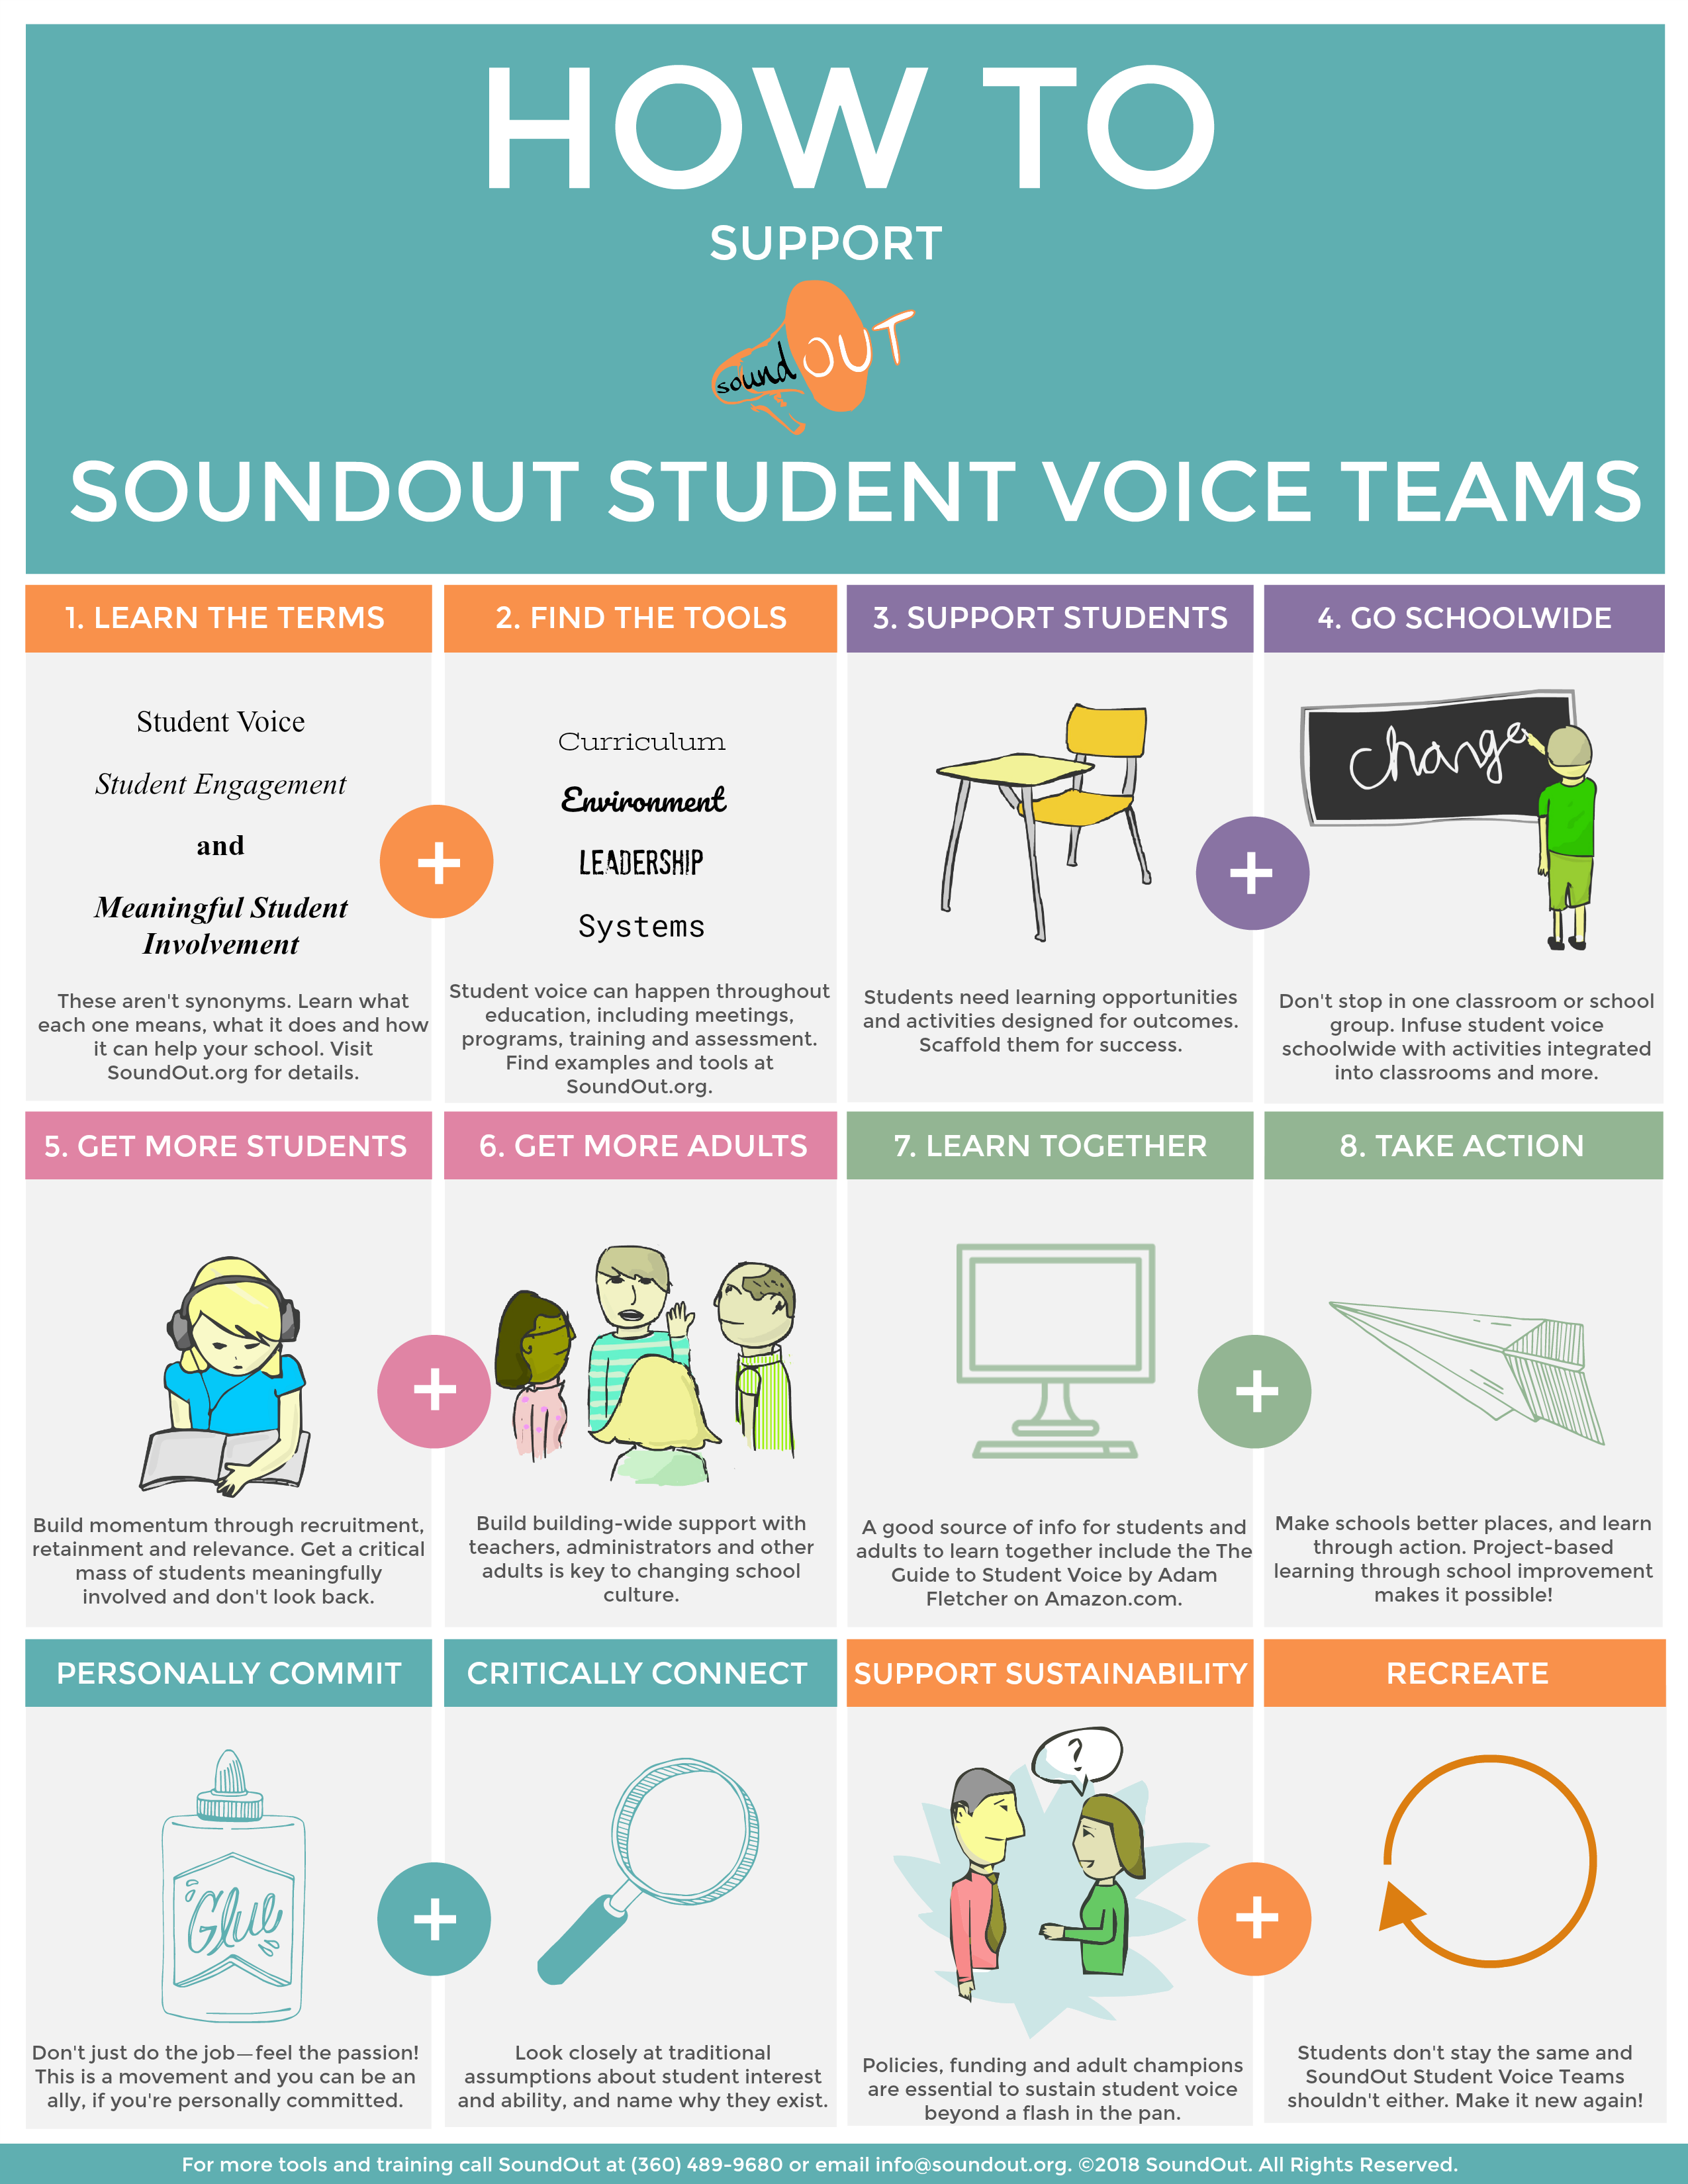 How To Support SoundOut Student Voice Teams